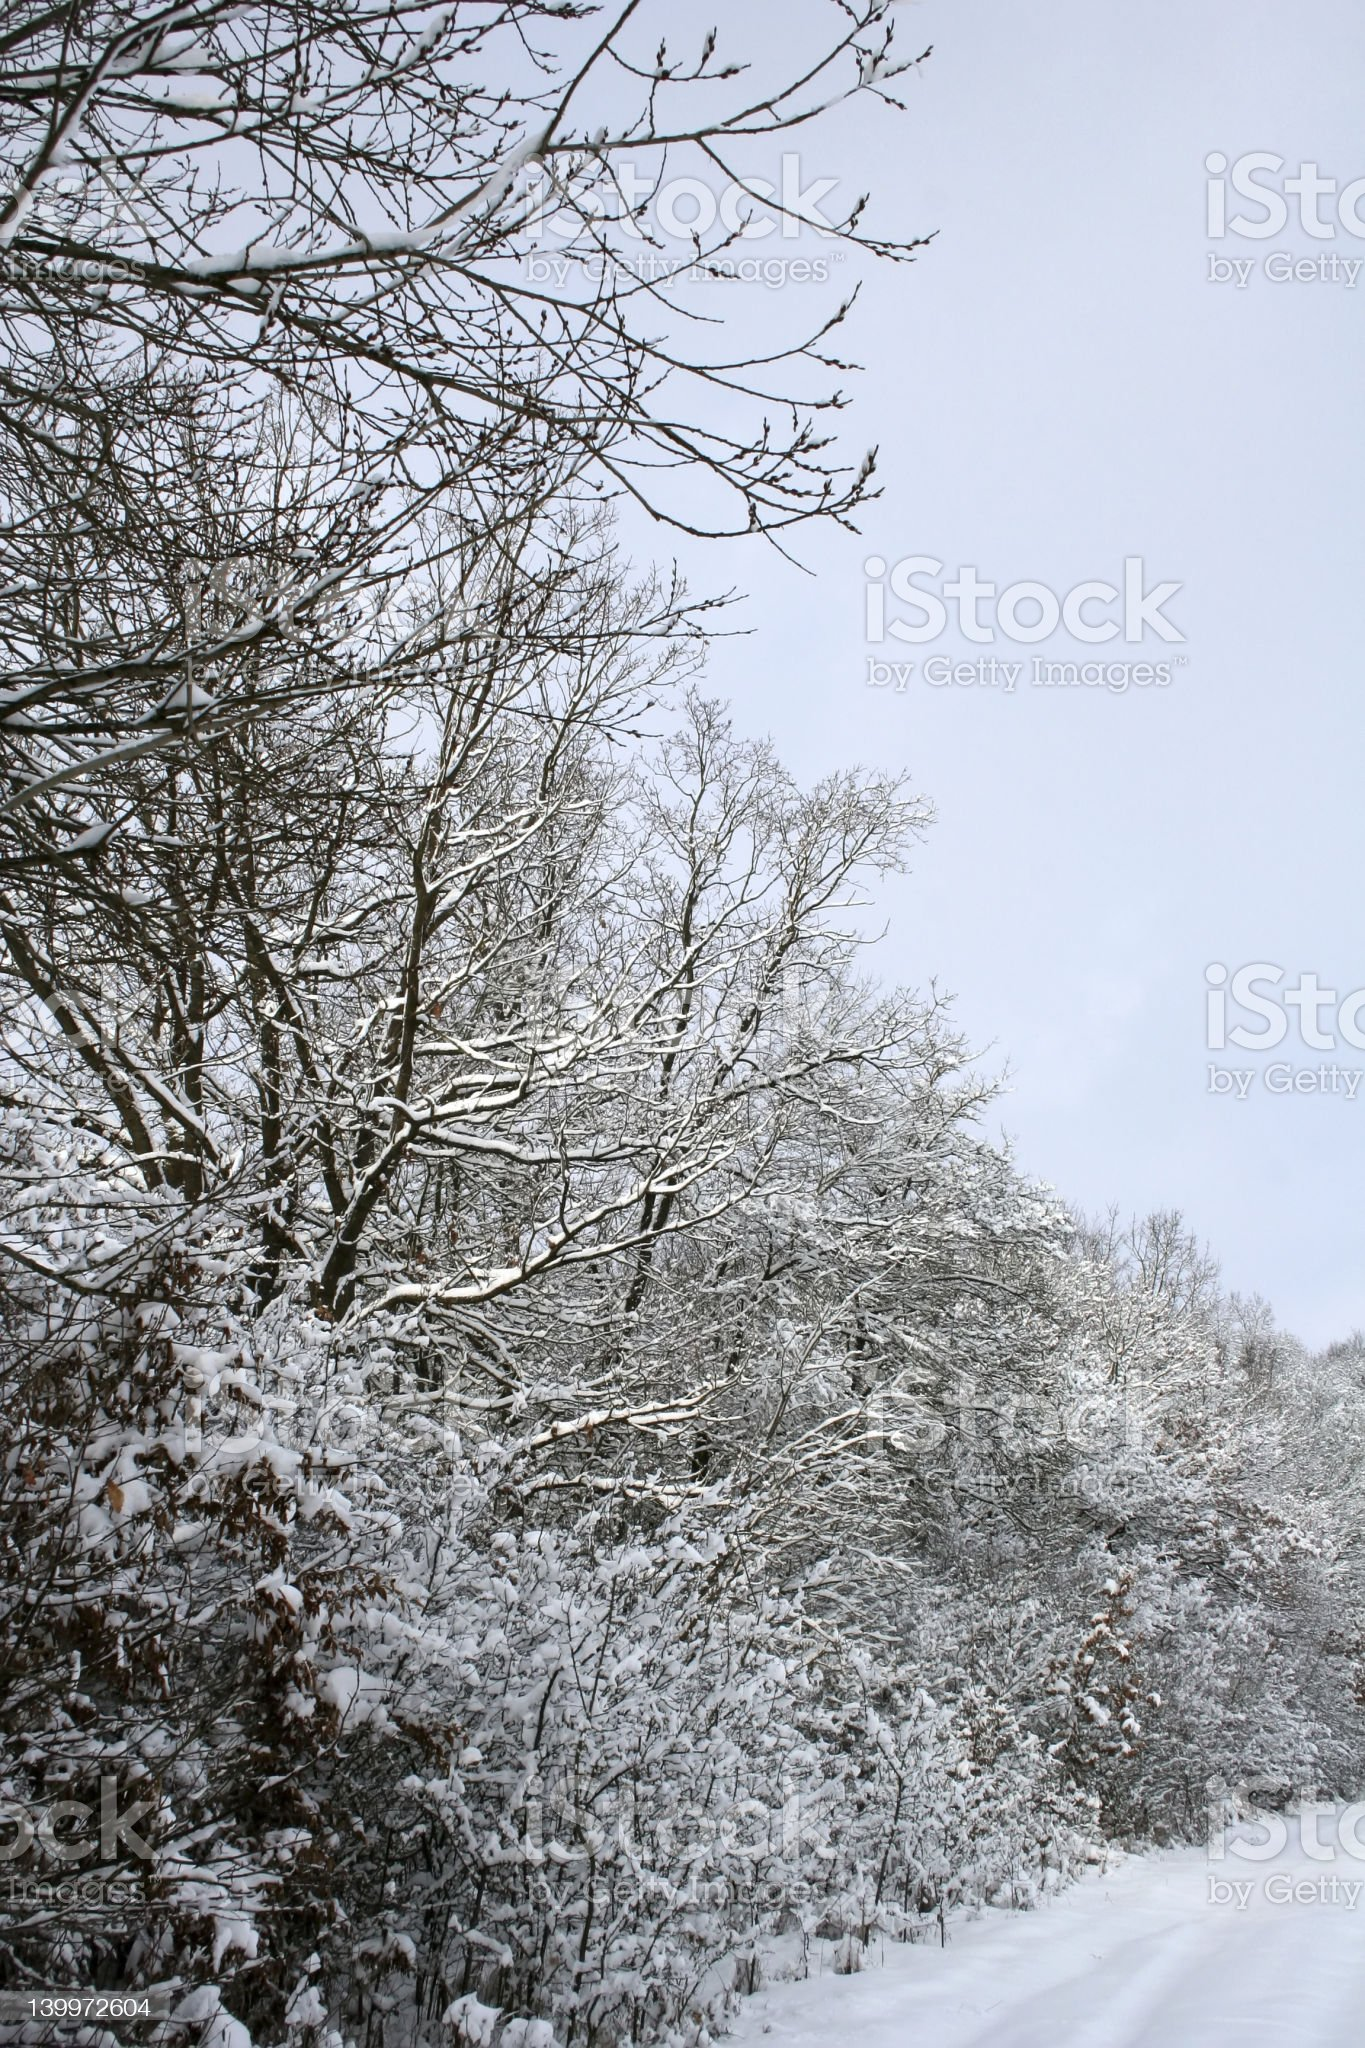 Winter-Landscape royalty-free stock photo